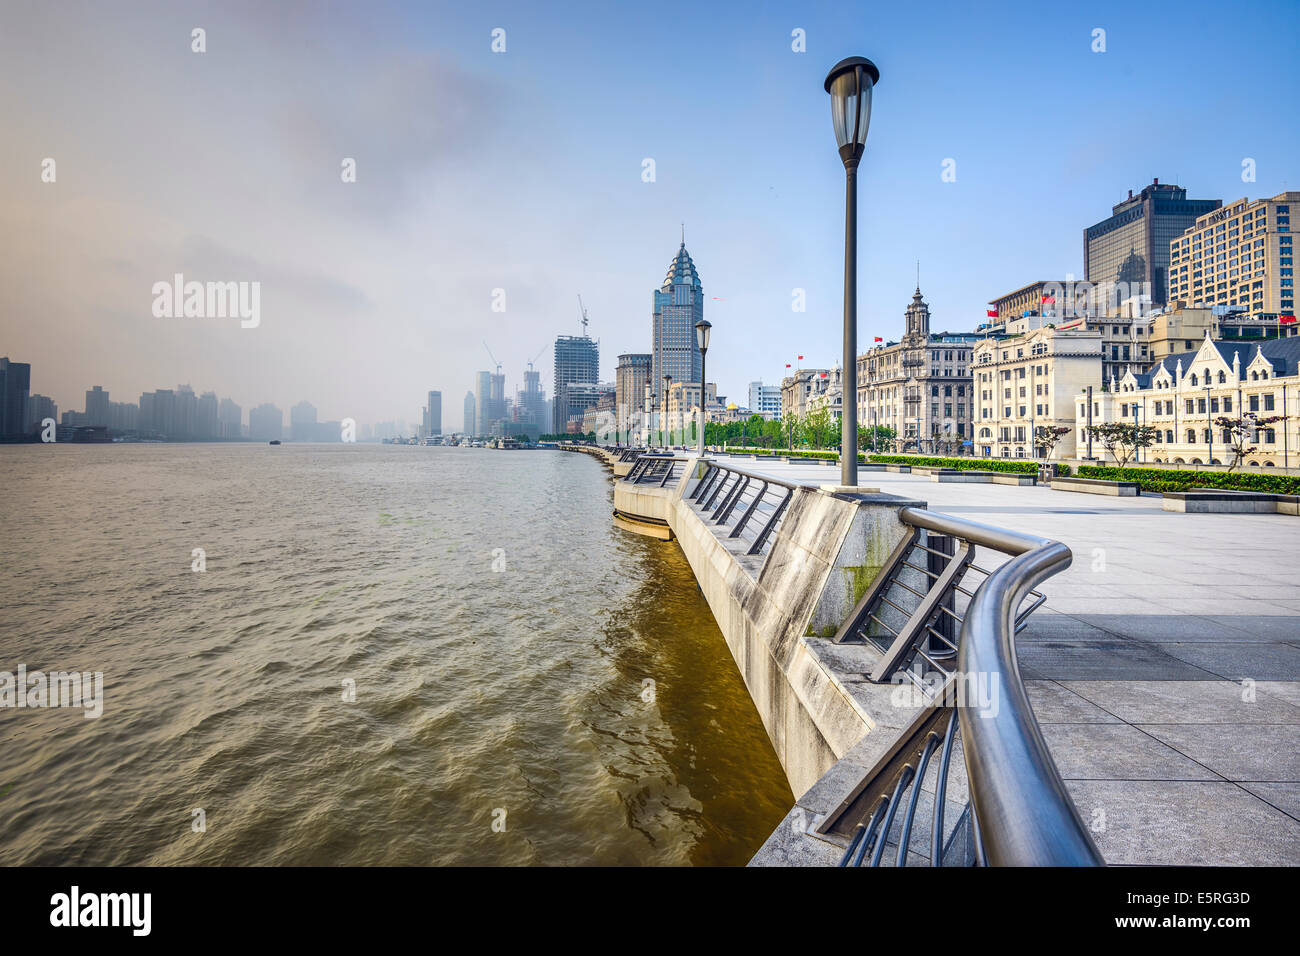 Shanghai, China at the Bund in the early morning. - Stock Image